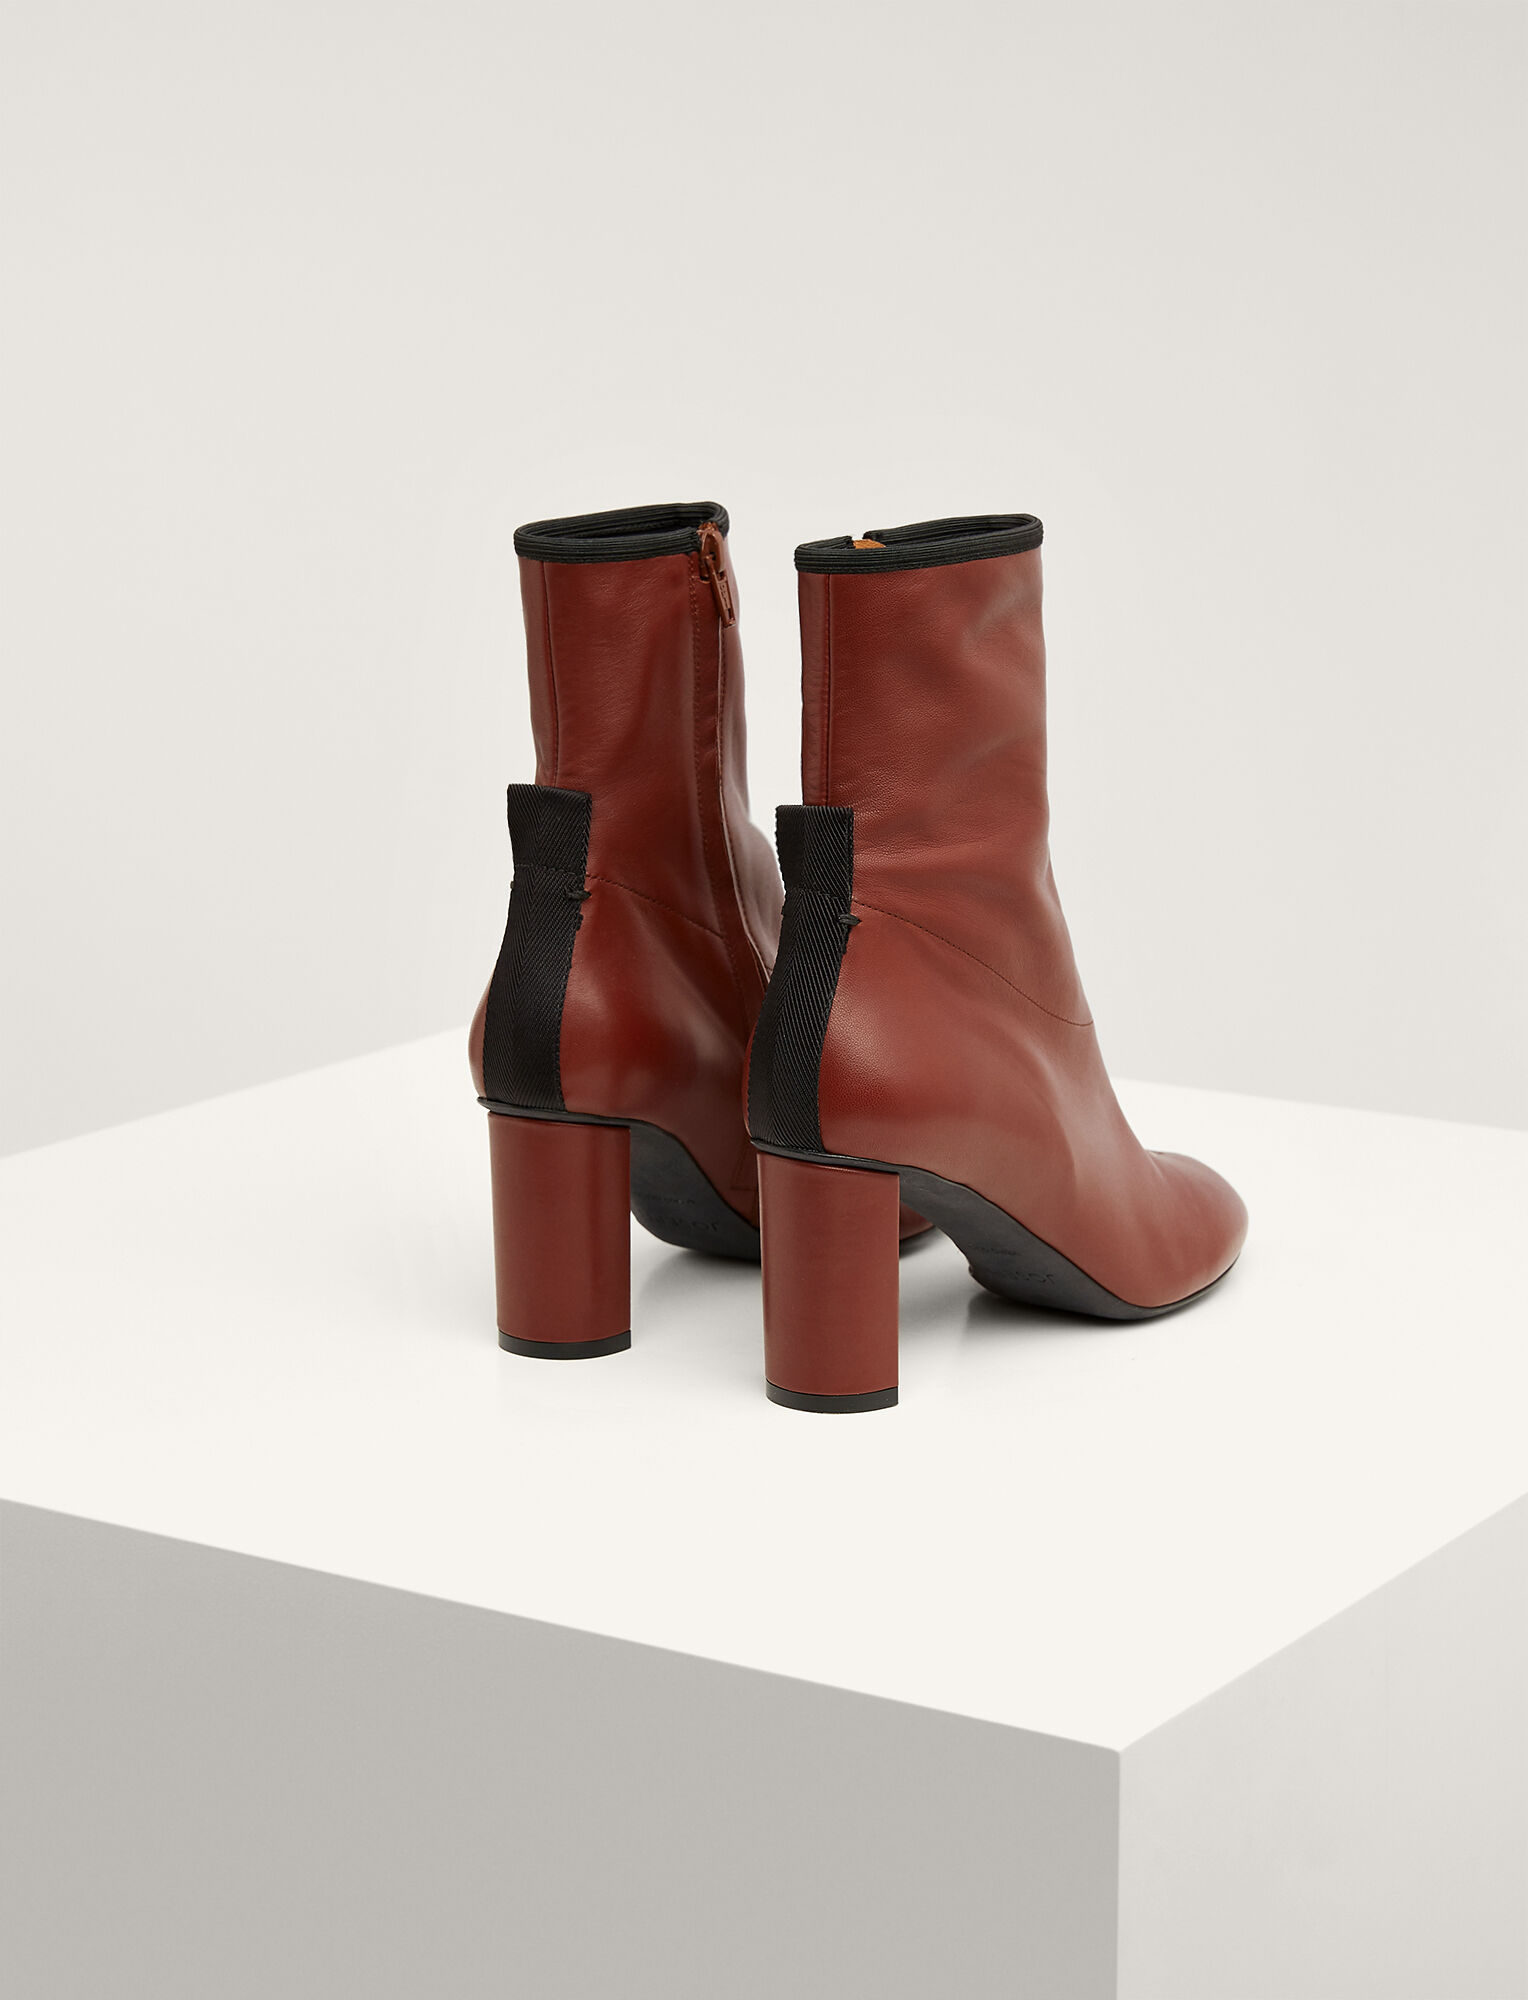 Joseph, Frida Block Heel Ankle Boot, in BROWN